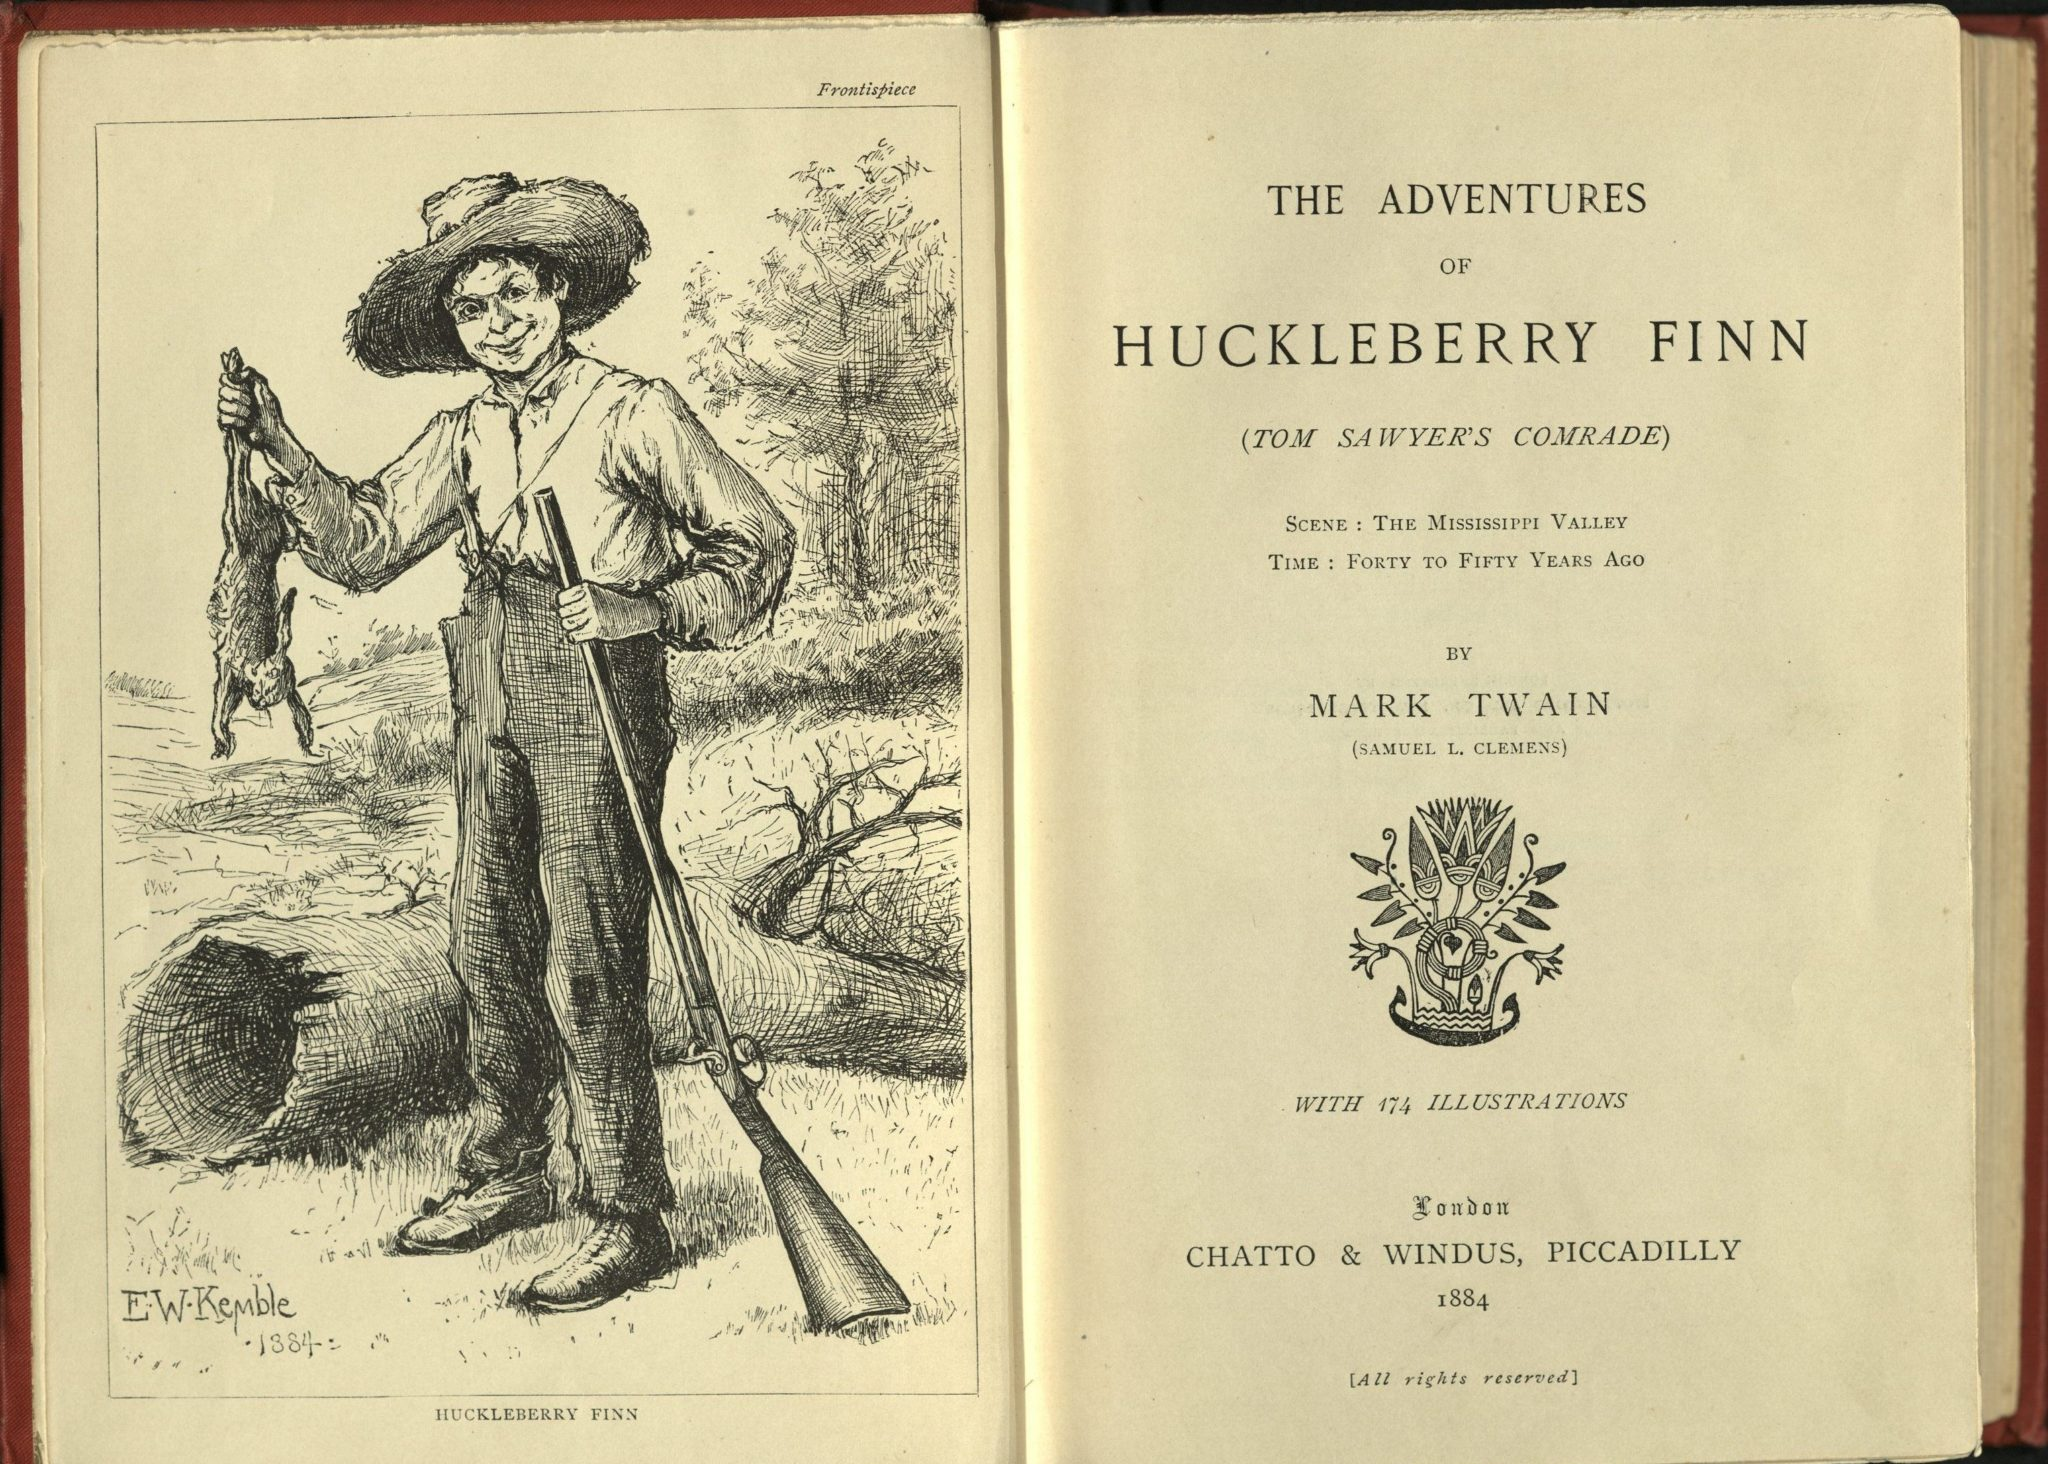 adventures of huckleberry finn essay The adventures of huckleberry finn essays are academic essays for citation these papers were written primarily by students and provide critical analysis of huck finn by mark twain.